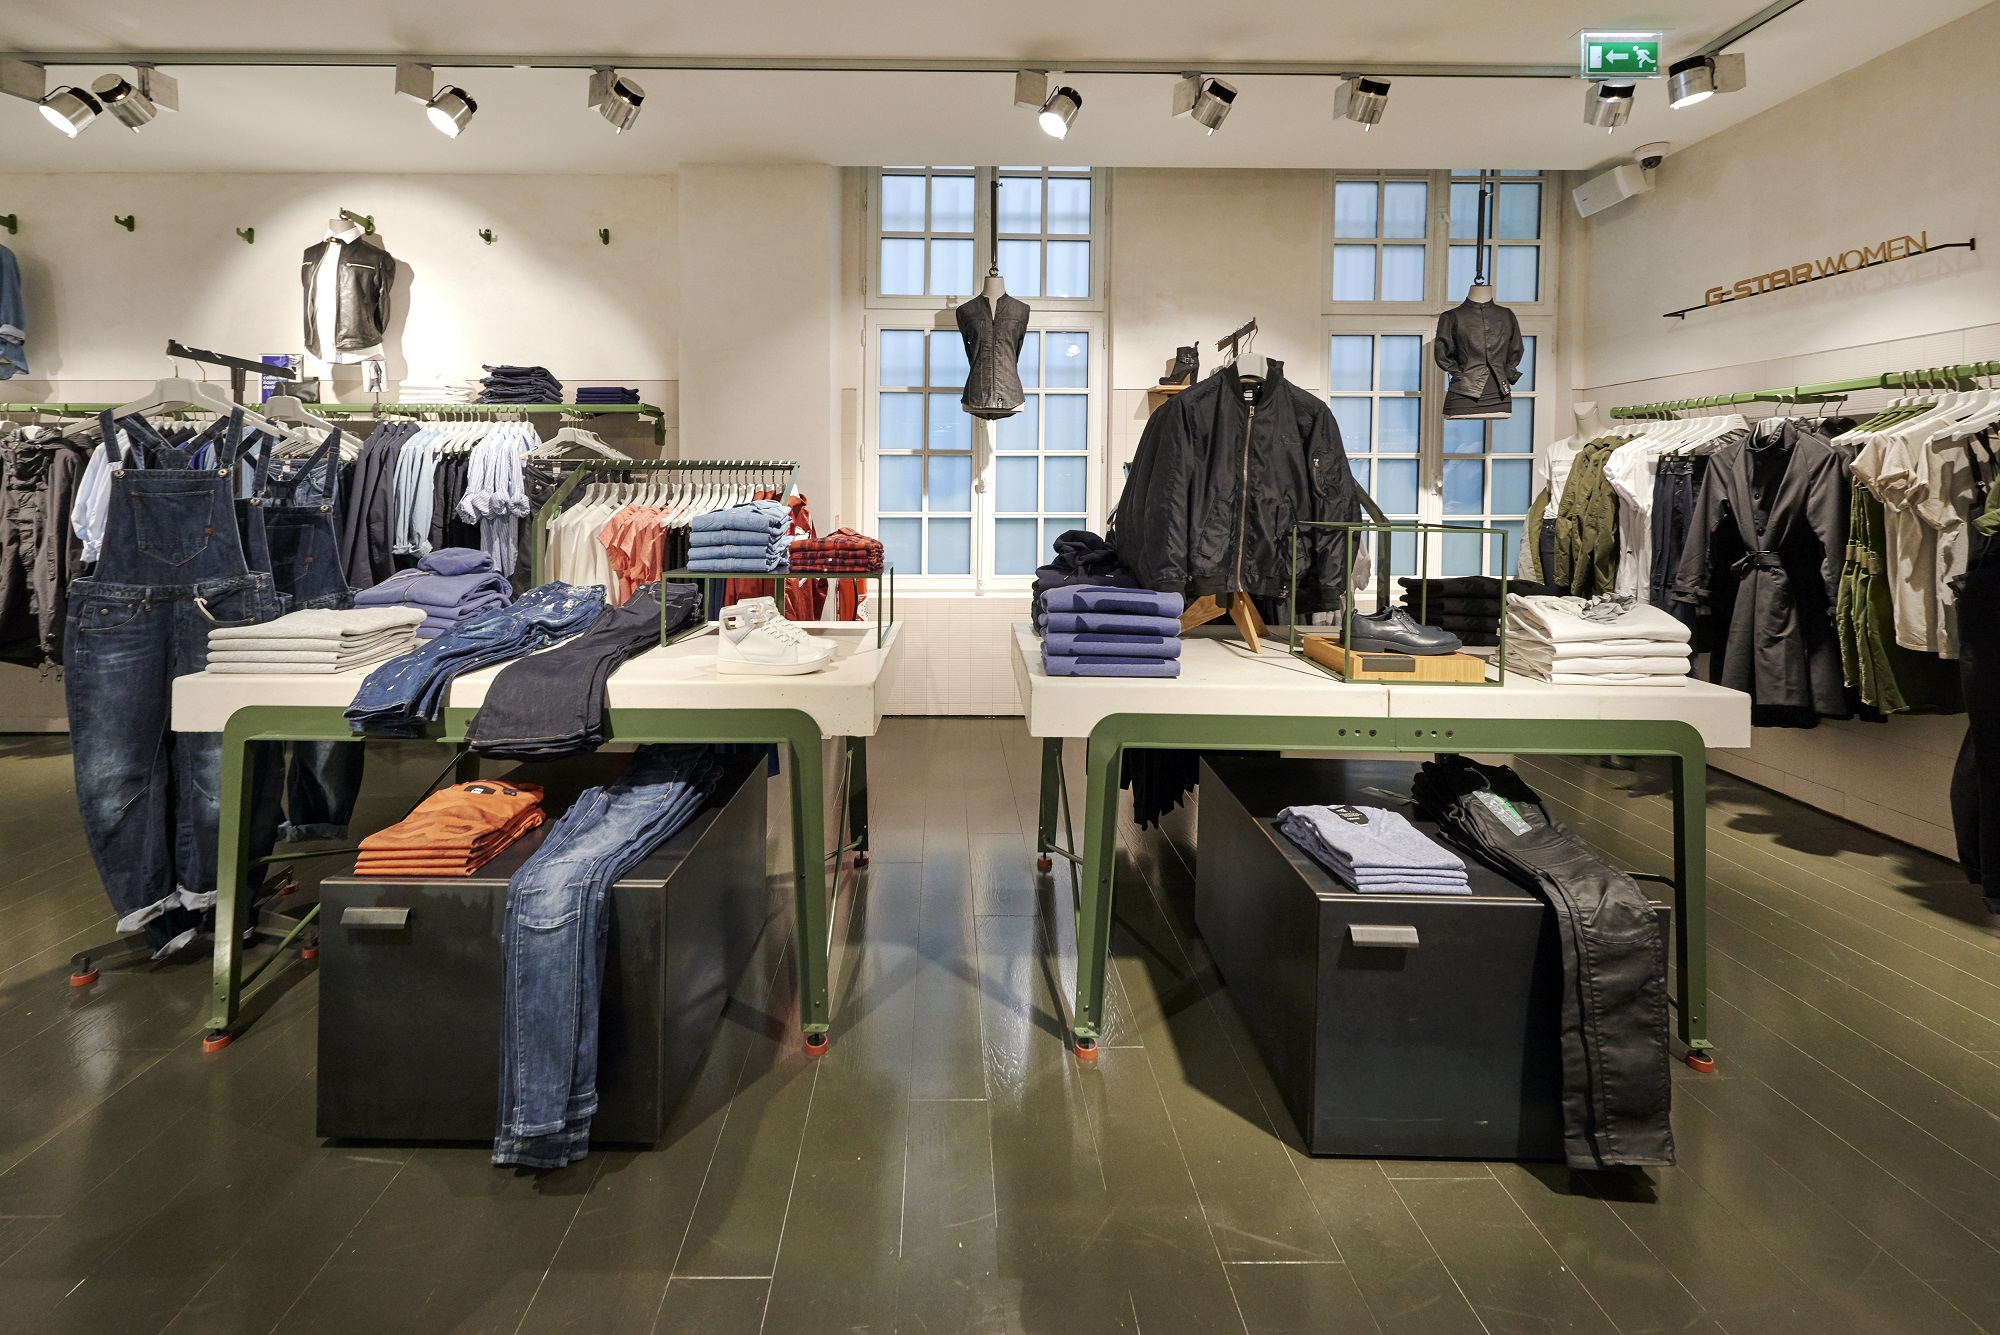 Good Watch Brands For Men >> G-Star RAW opens a new boutique in Paris Bastille - Crash